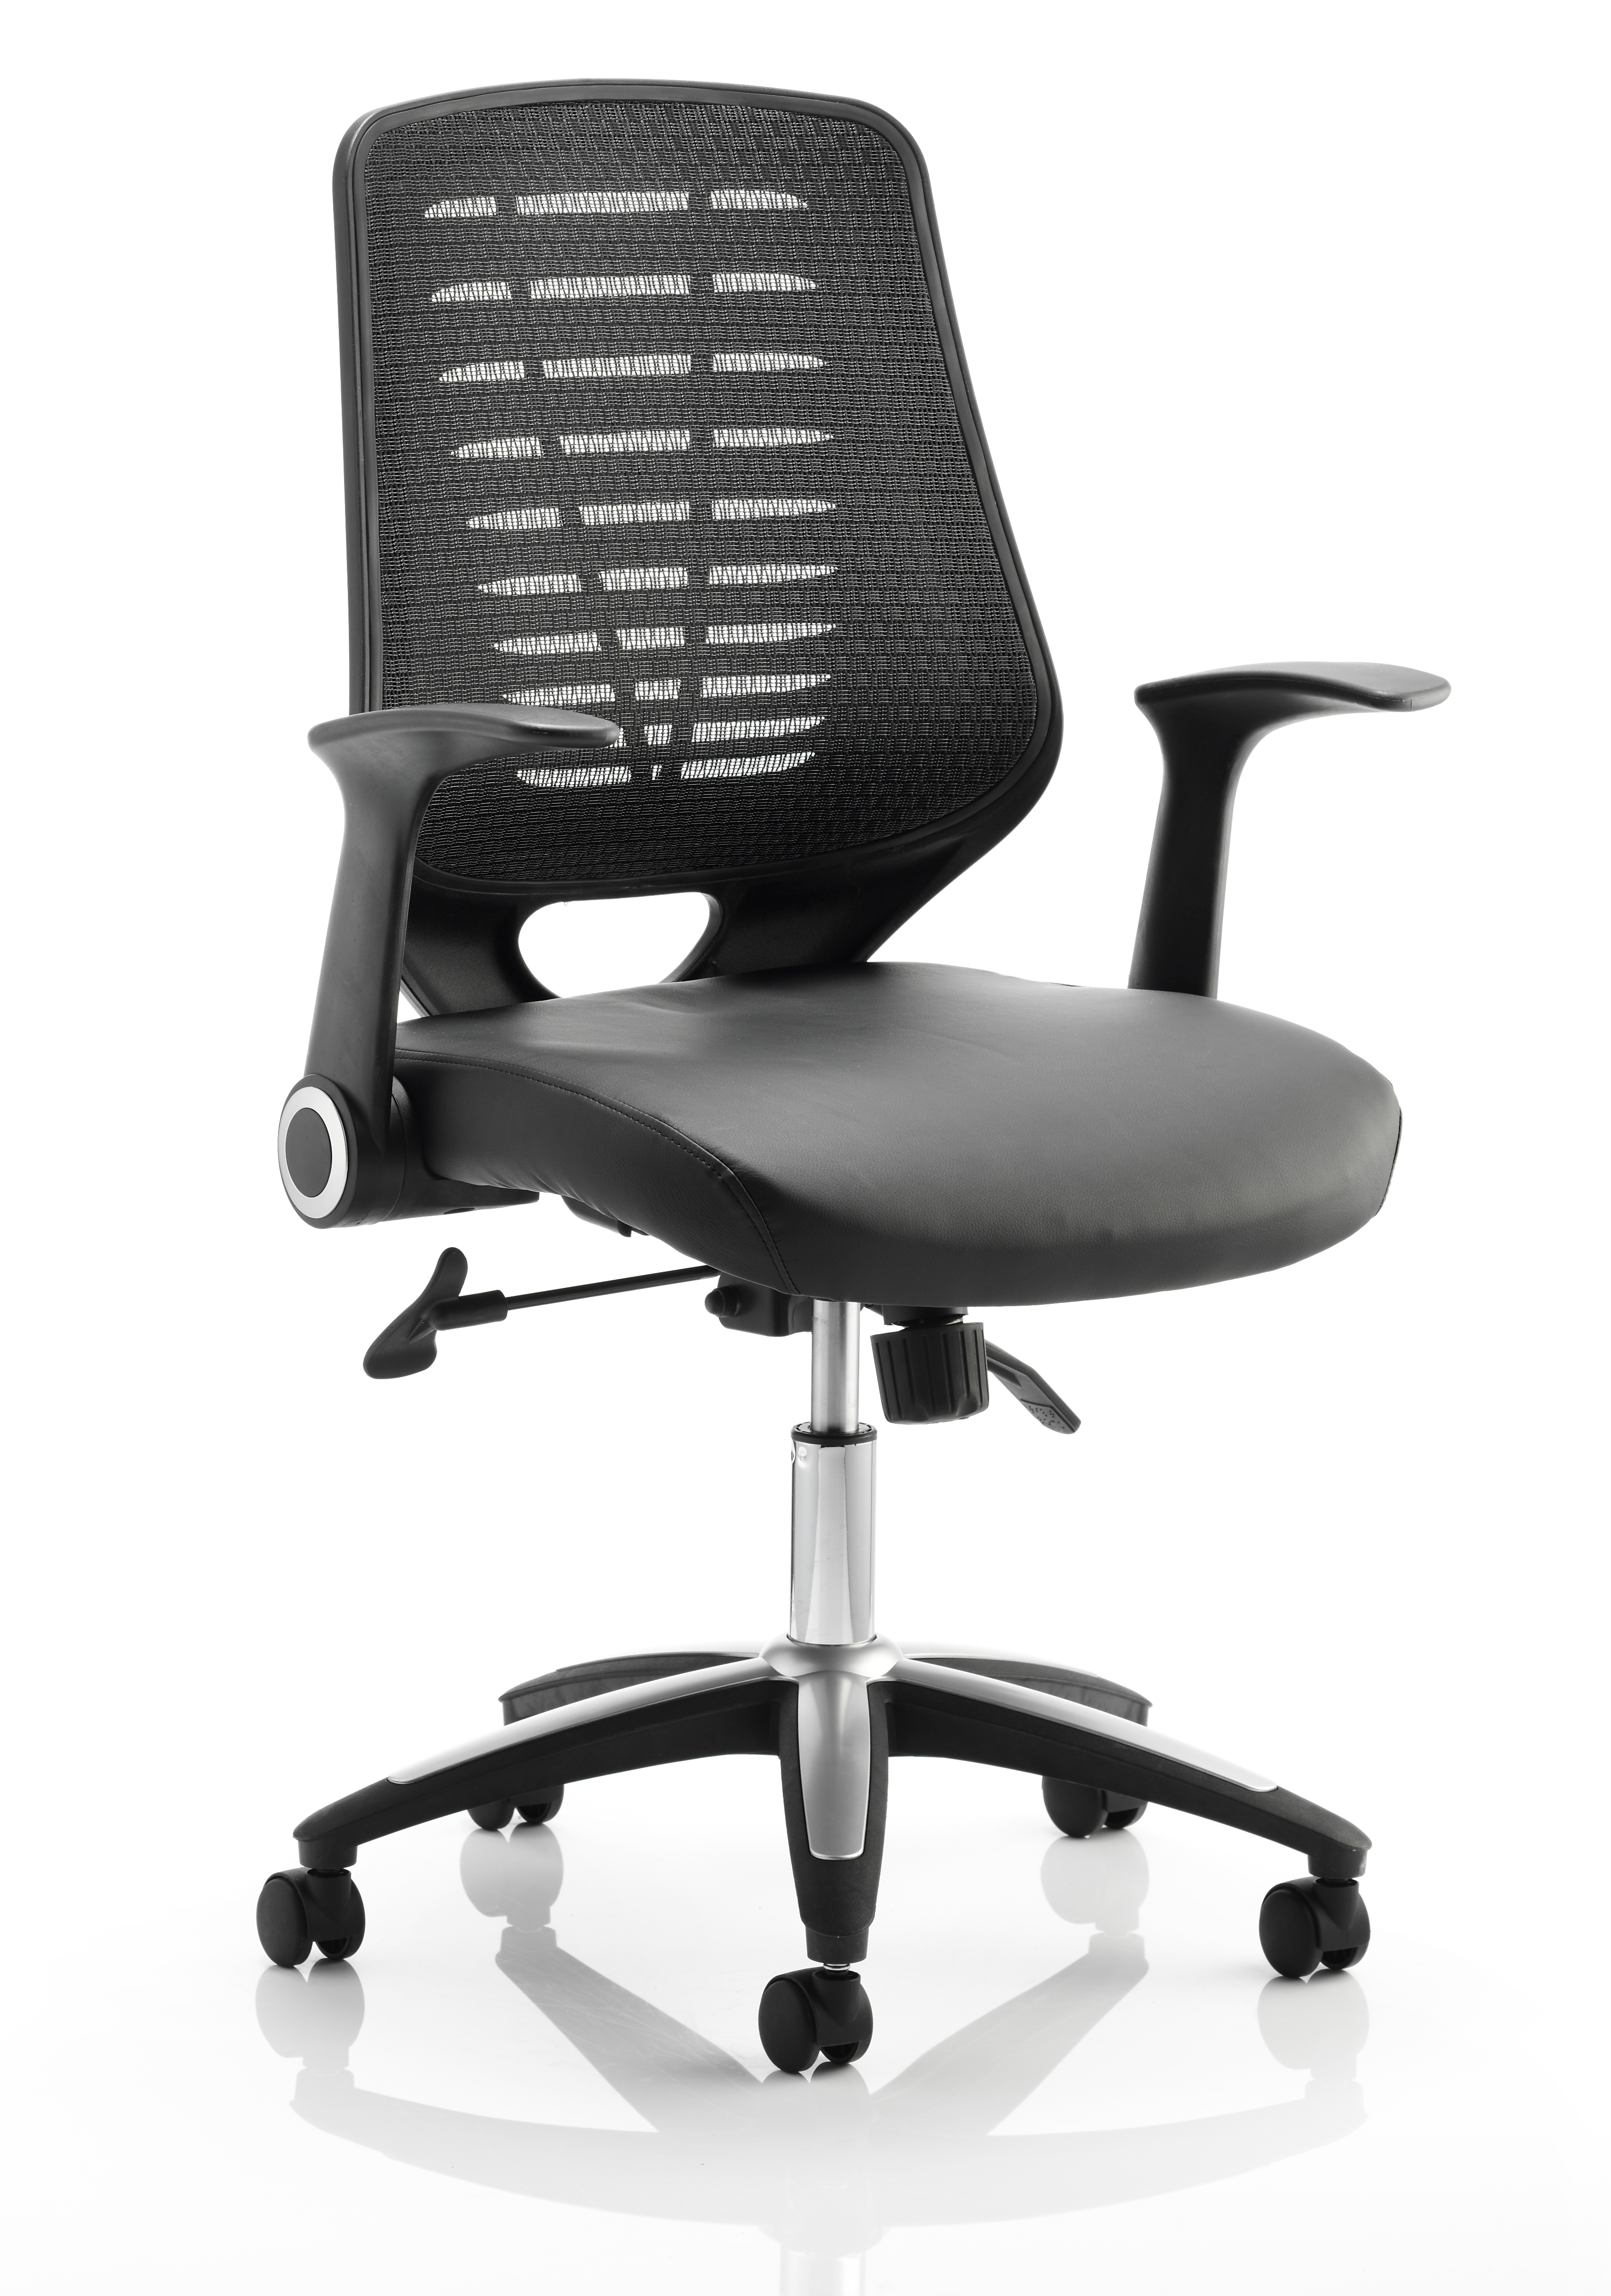 Desk Chairs Relay Chair Leather Seat Black Back With Arms OP000117